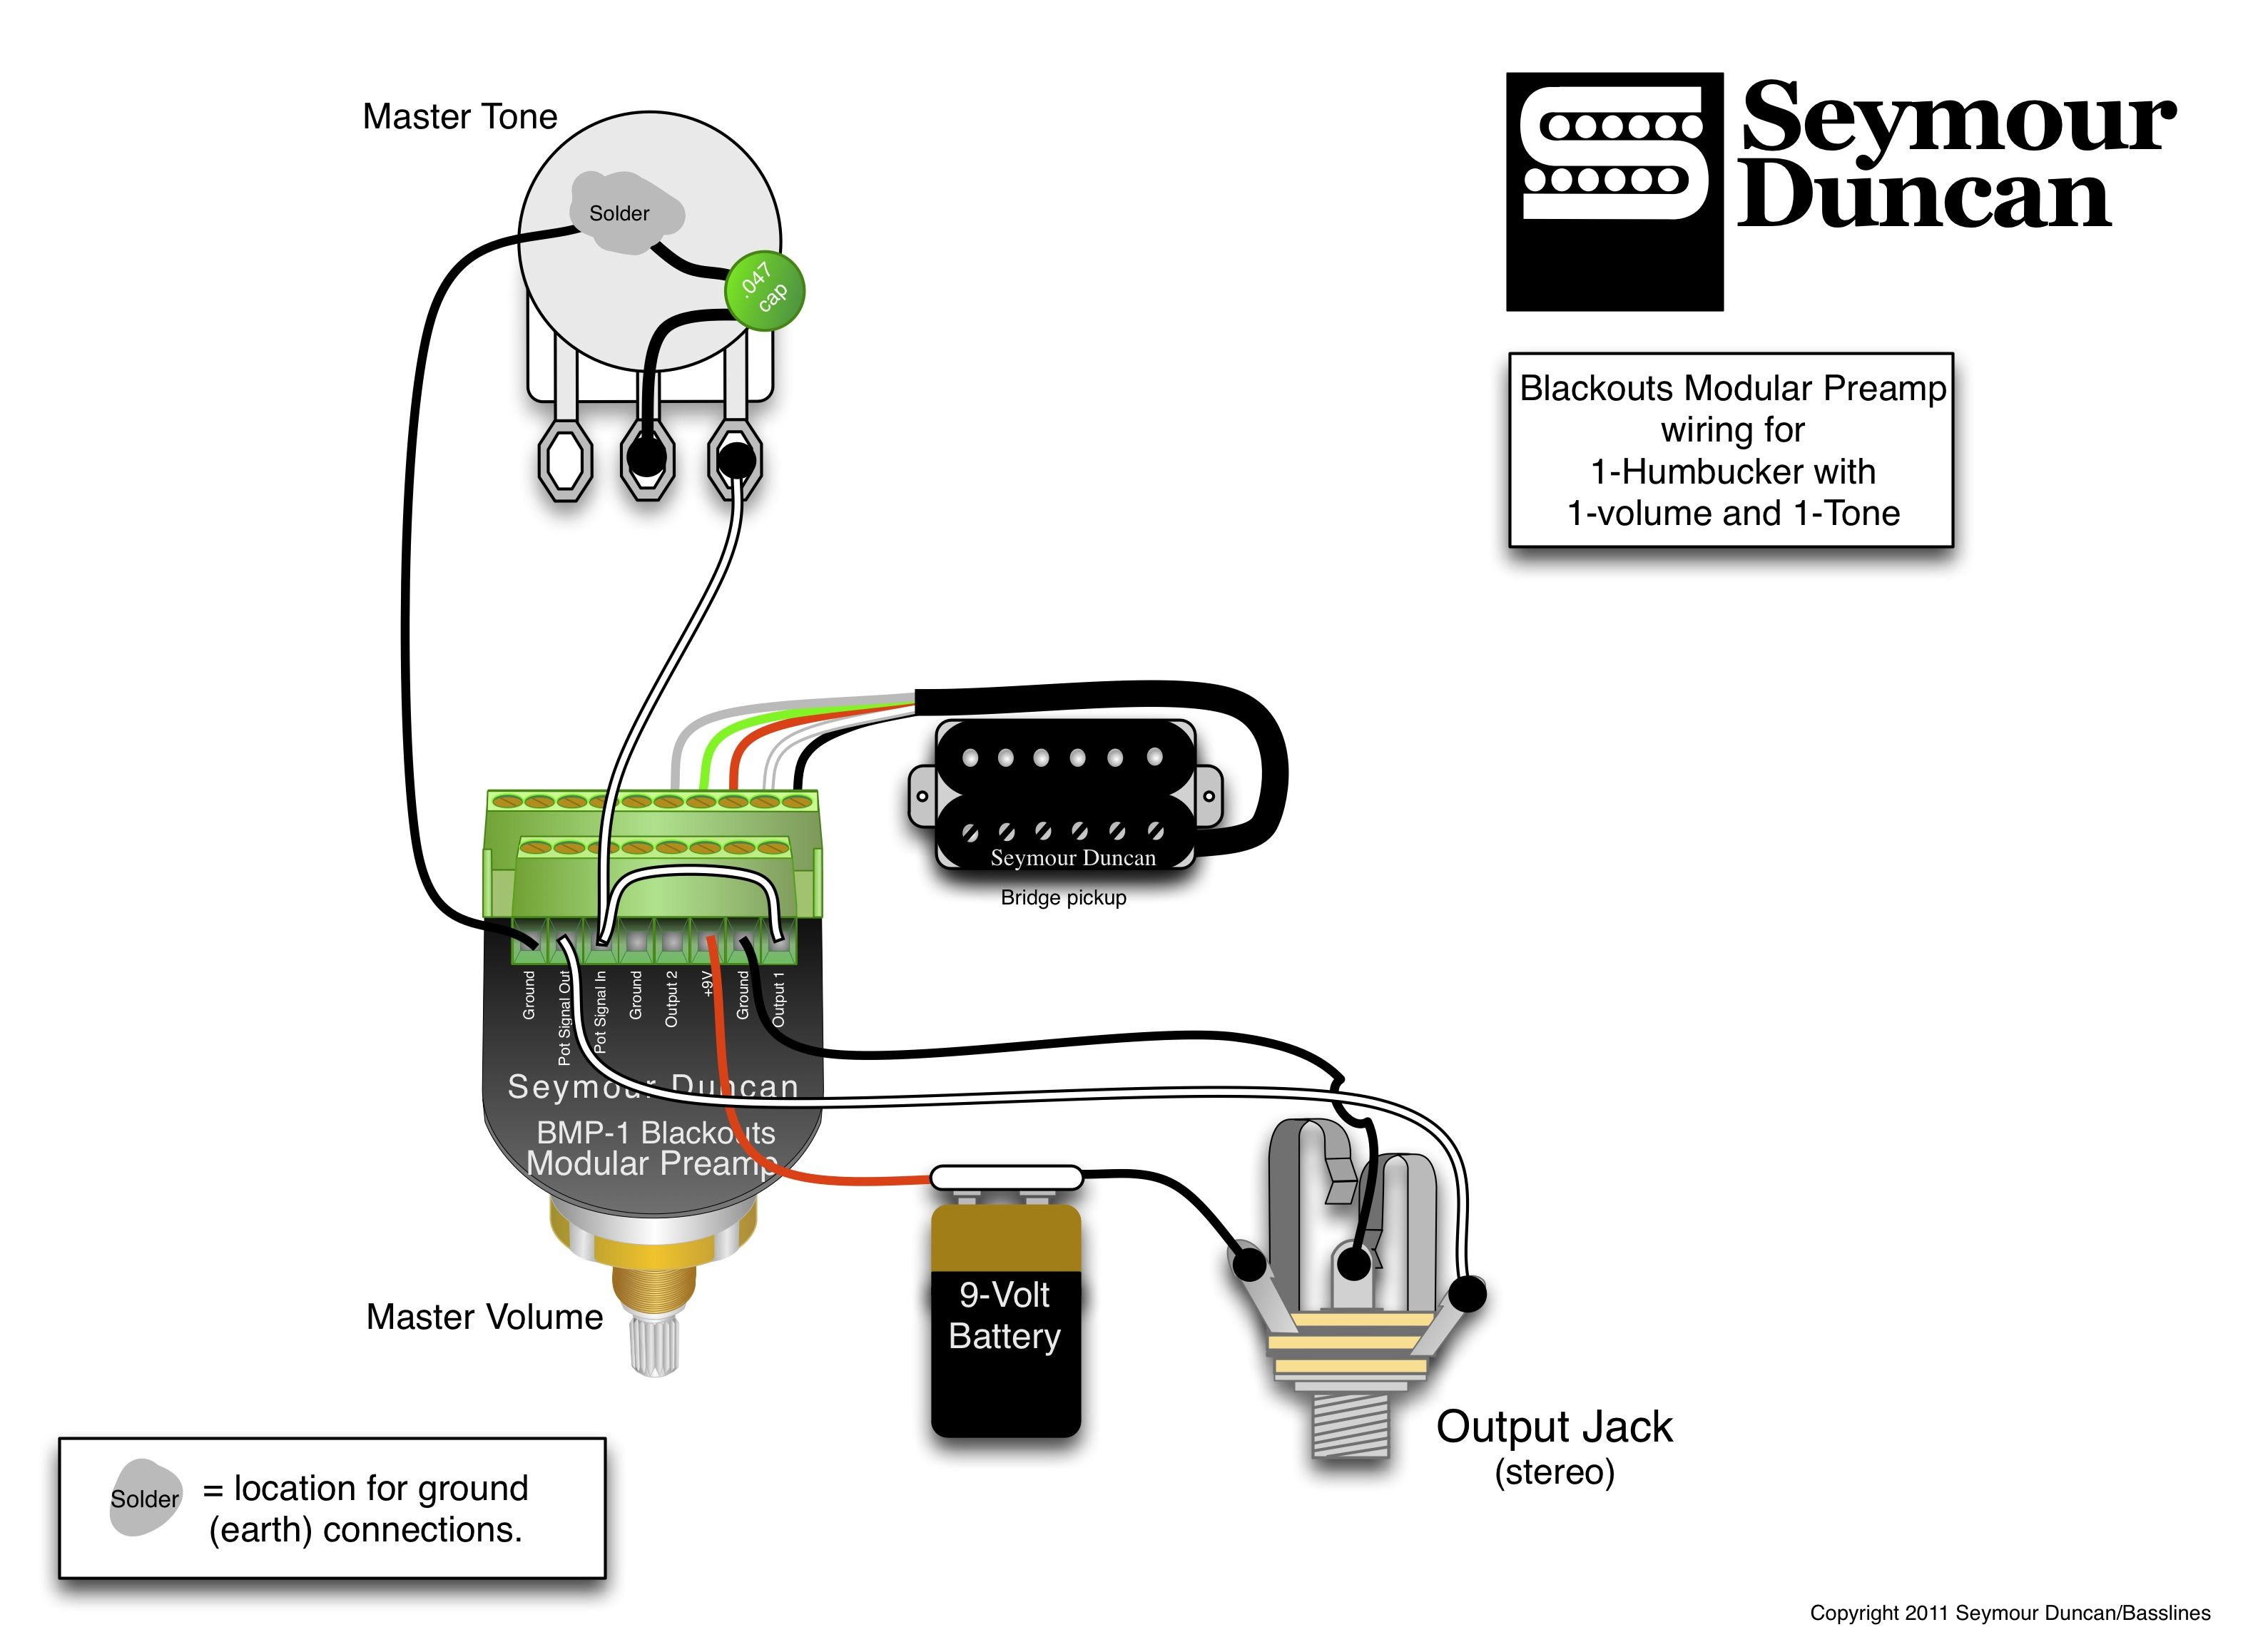 wiring diagram seymour duncan how to create a site map blackouts modular preamp for 1 humbucker with